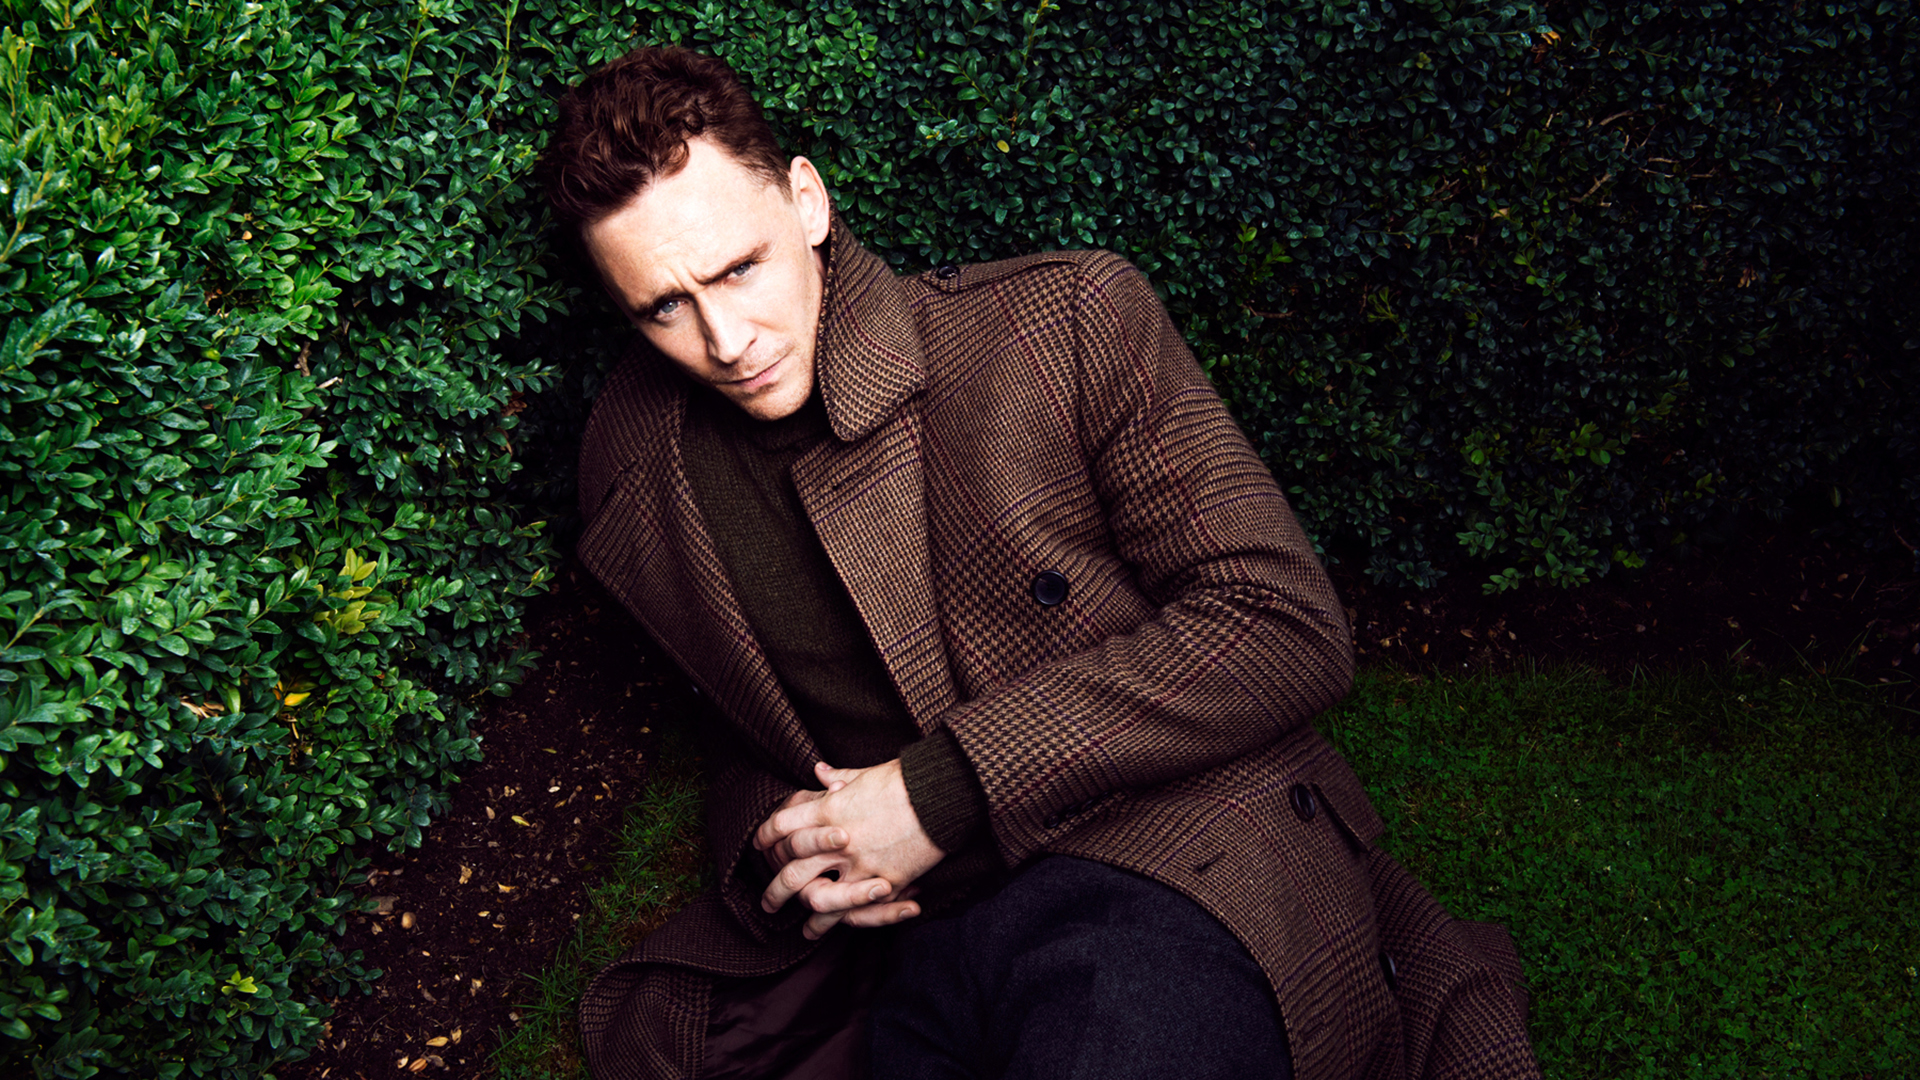 Wallpapers Tom Hiddleston Galleries Tom Hiddleston Pics Tom Hiddleston 1920x1080